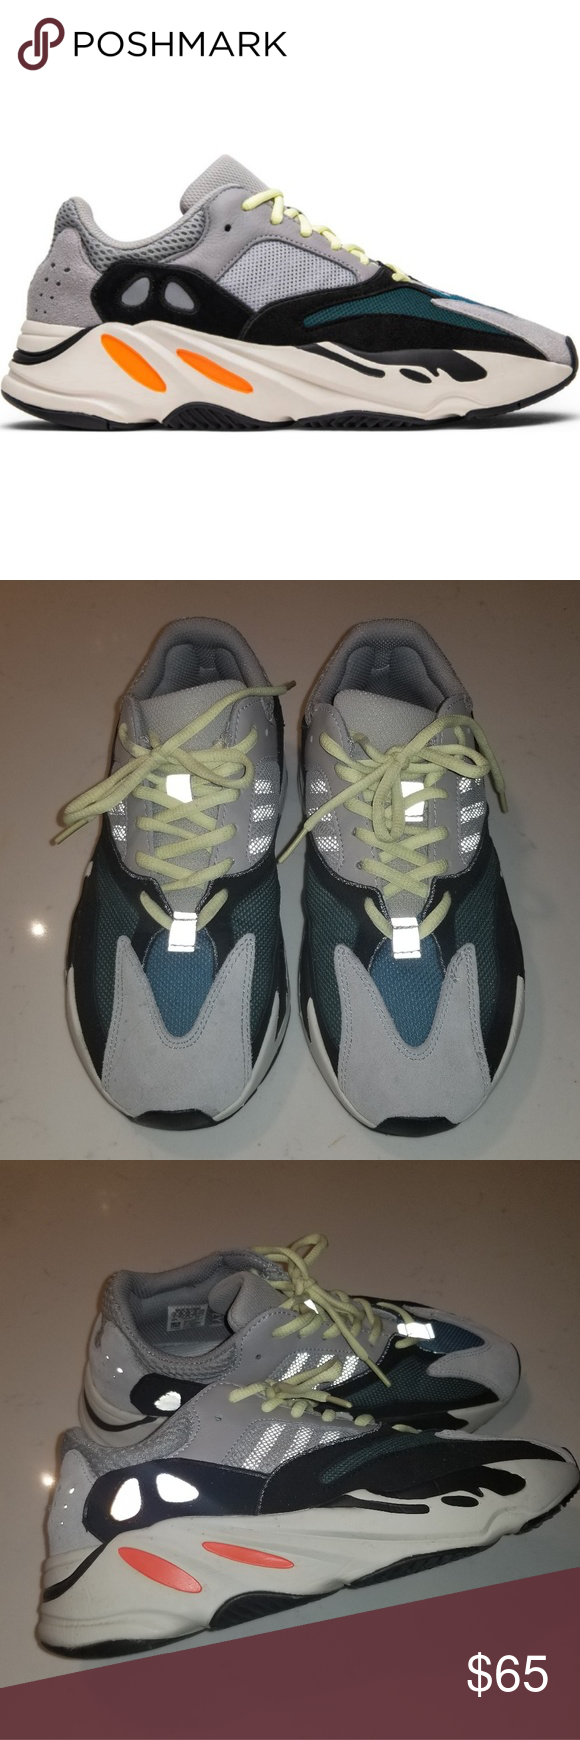 Yeezy Boost 700 A++ Yeezy Boost 700 A++